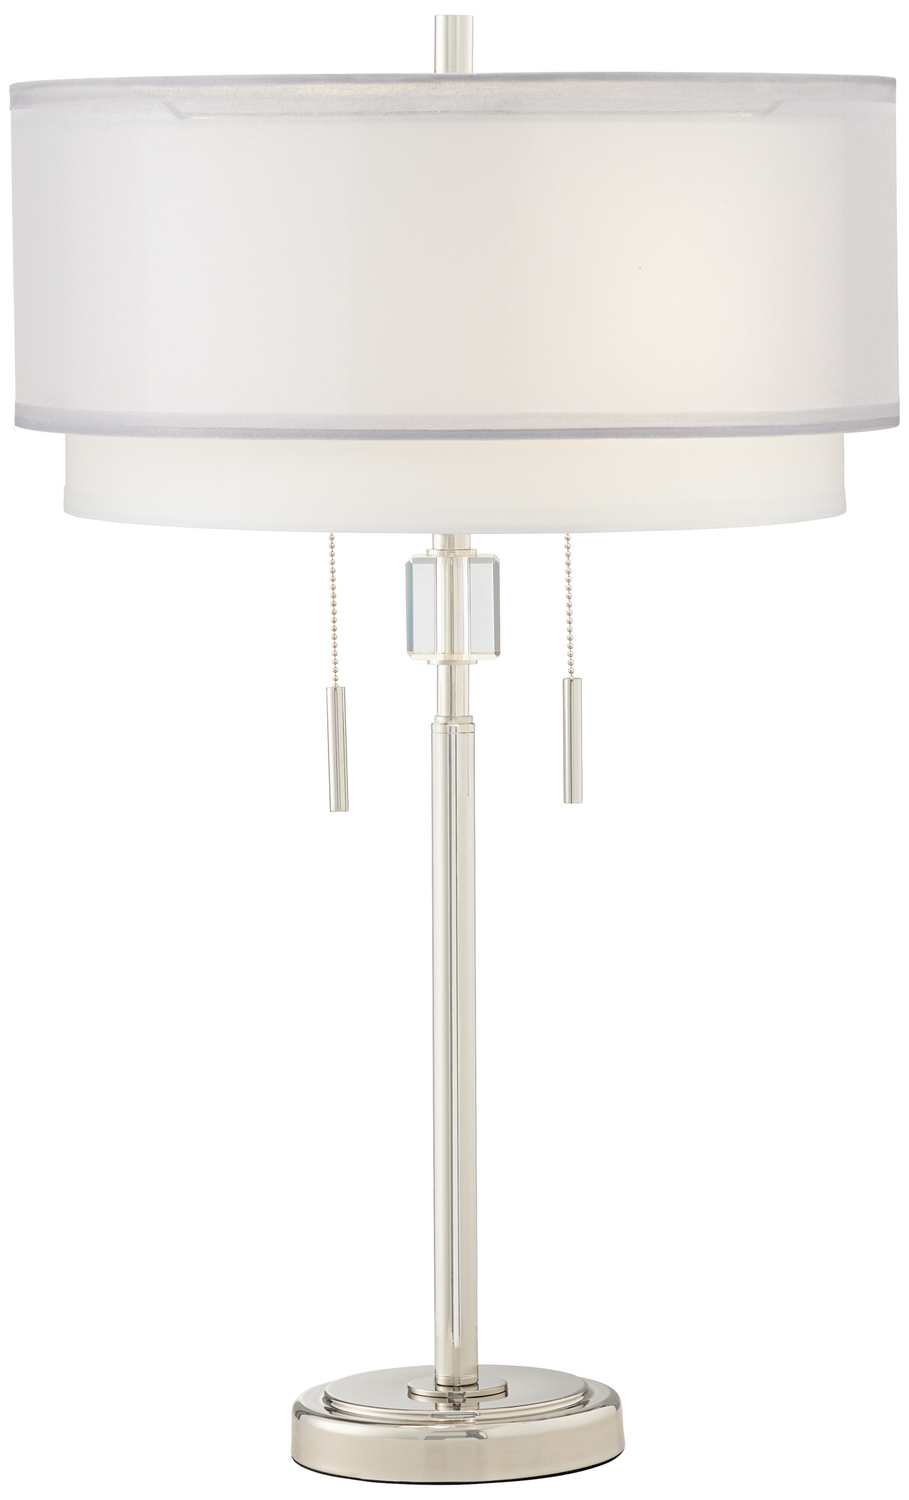 Two Light Table Lamp From The Claire Collection By Pacific Coast 87 10499 S2